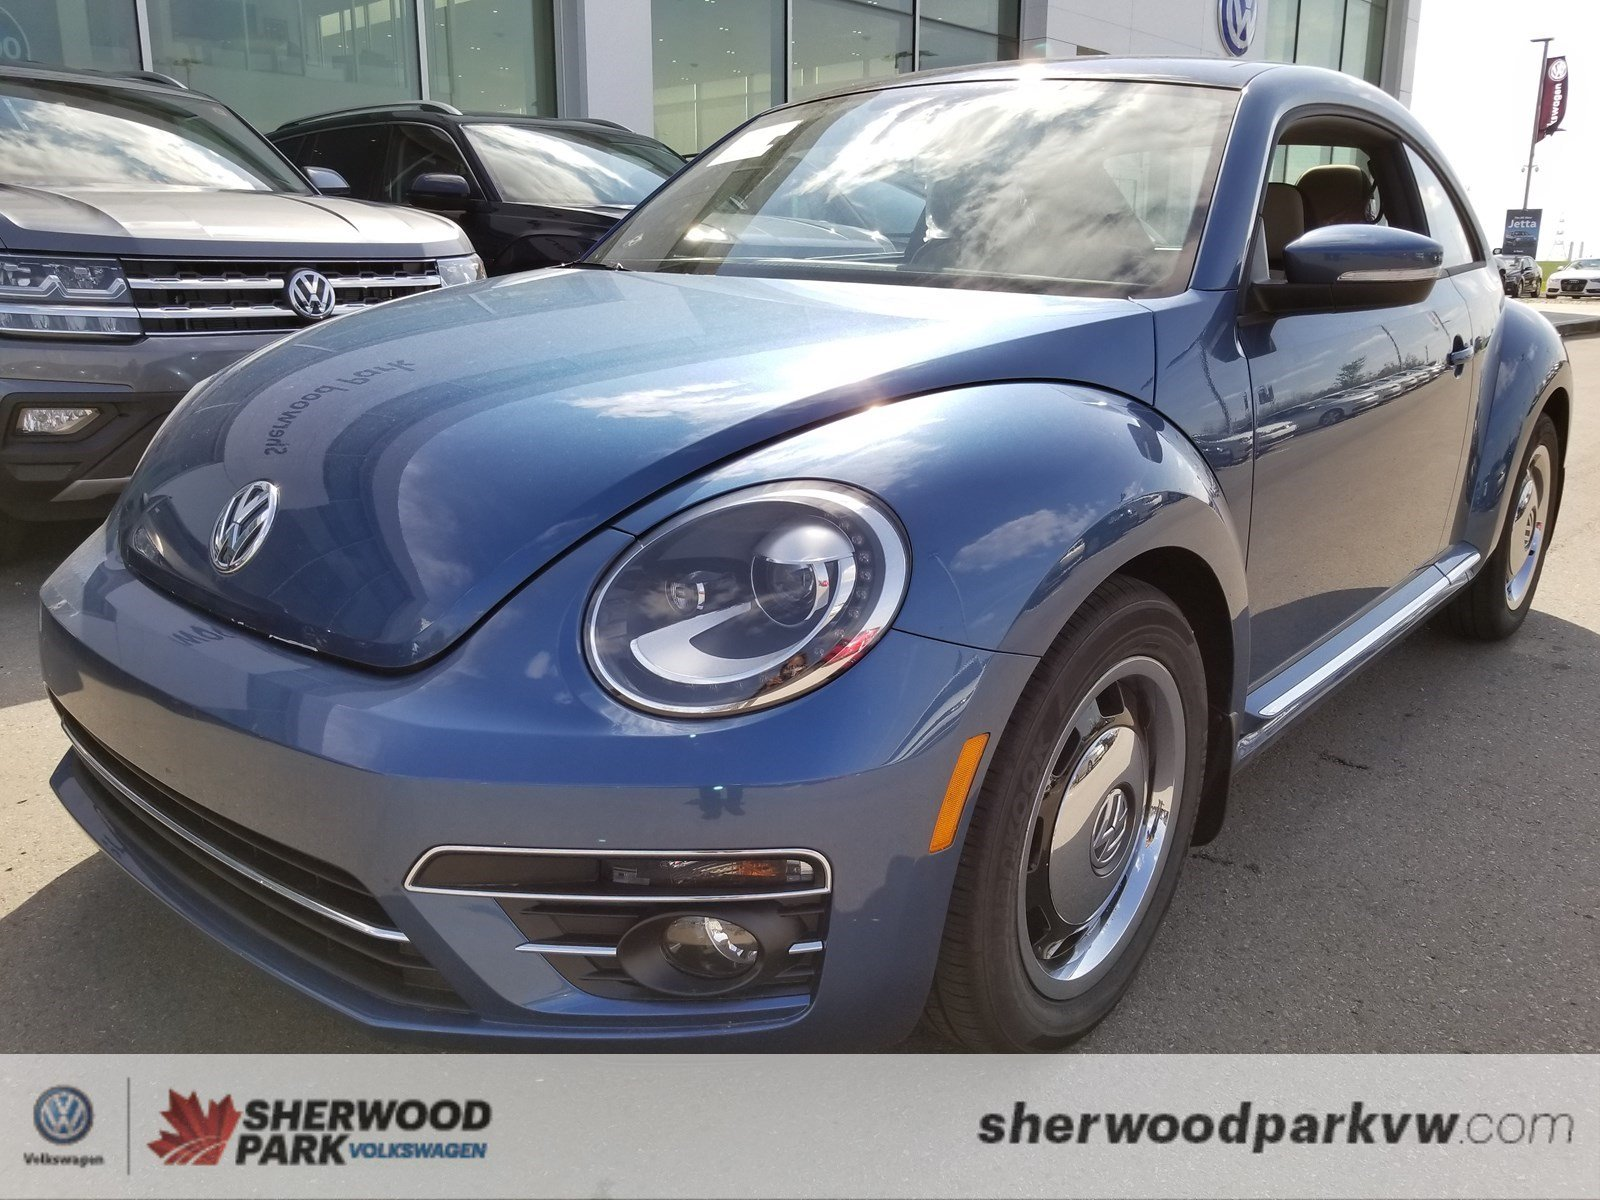 New 2018 Volkswagen Beetle Coast Hatchback in Sherwood Park